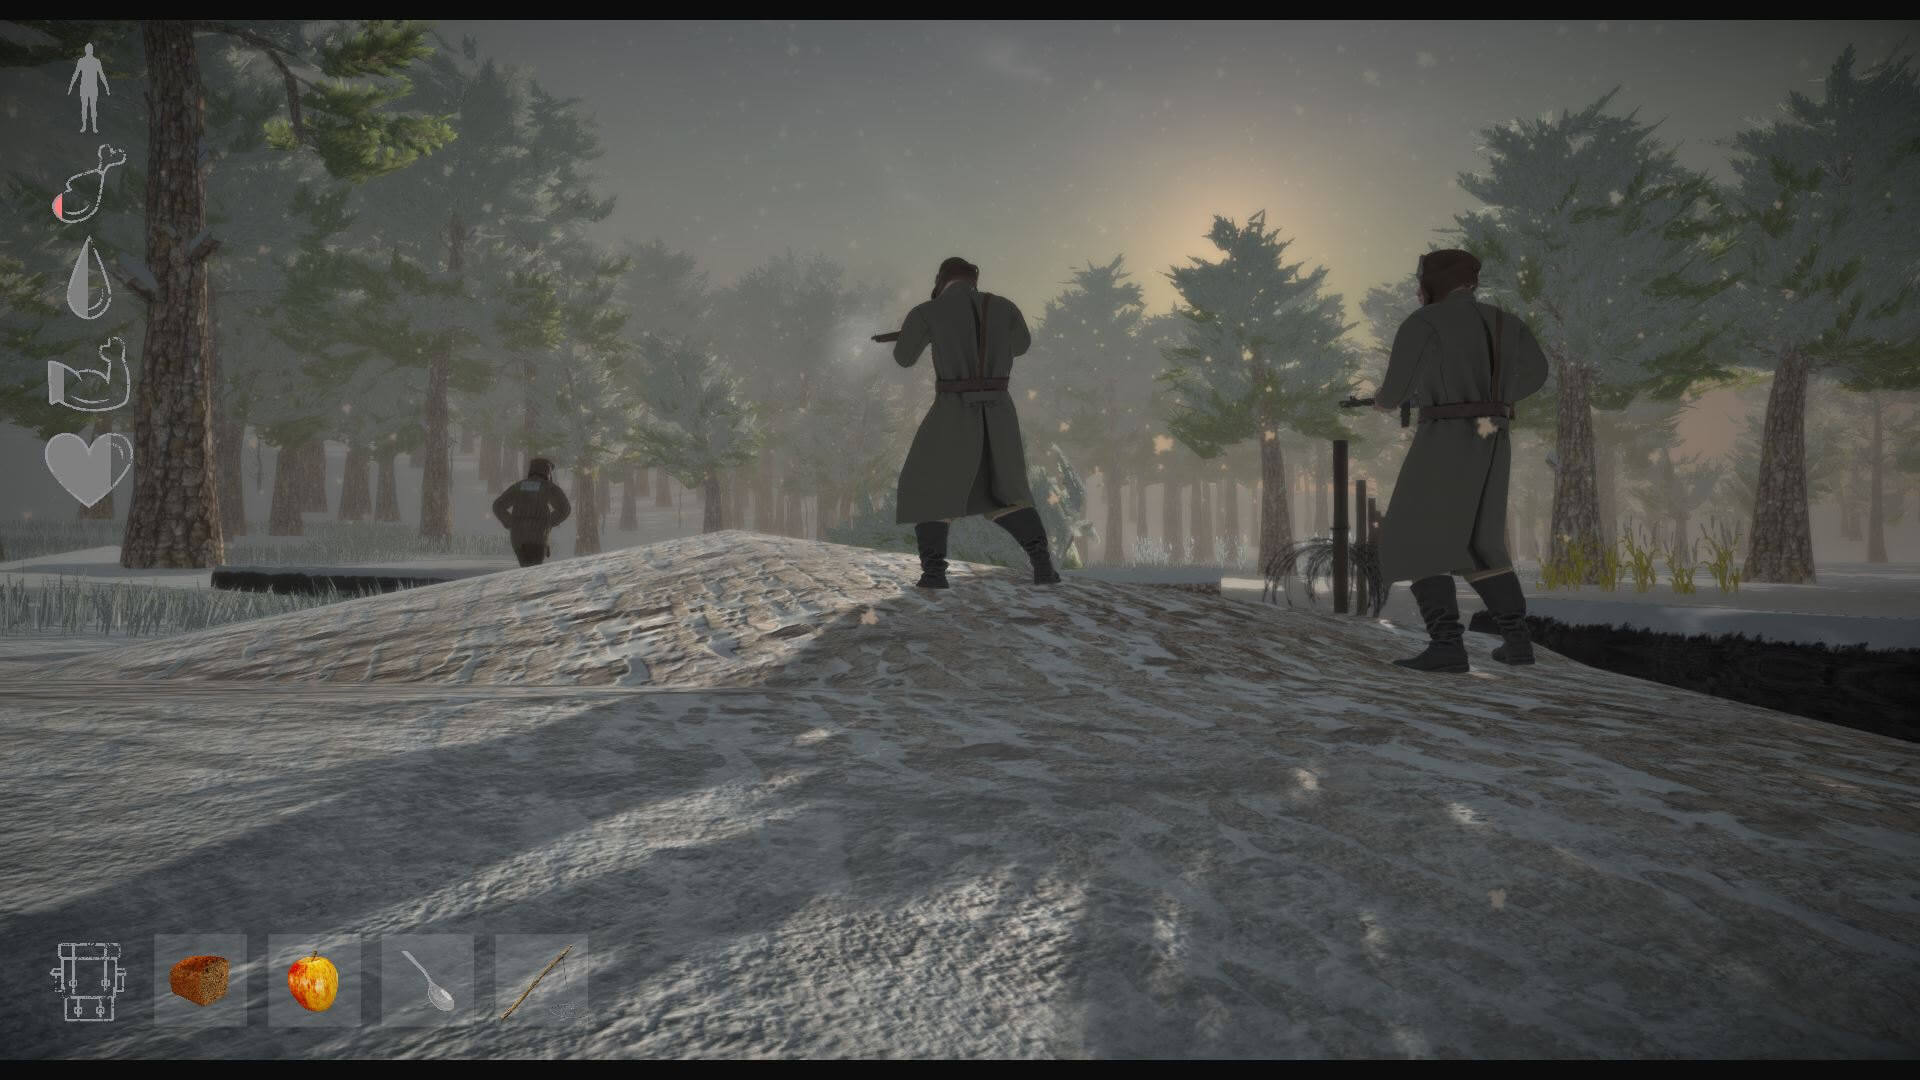 gulag game escape brutal oppression screenshot wilderness